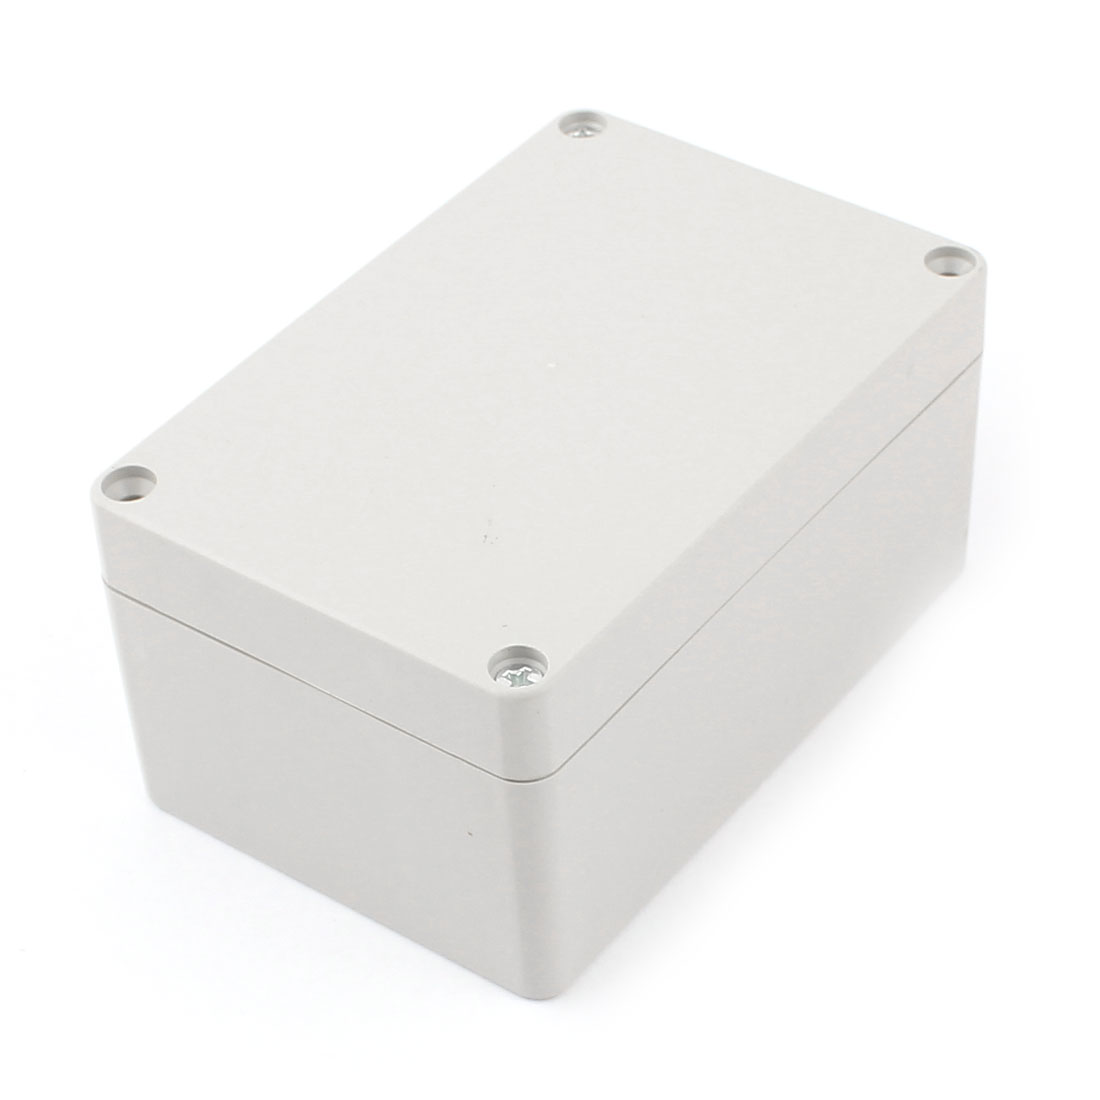 Plastic Sealed Cable Connect Project Case Junction Box 120x80x60mm